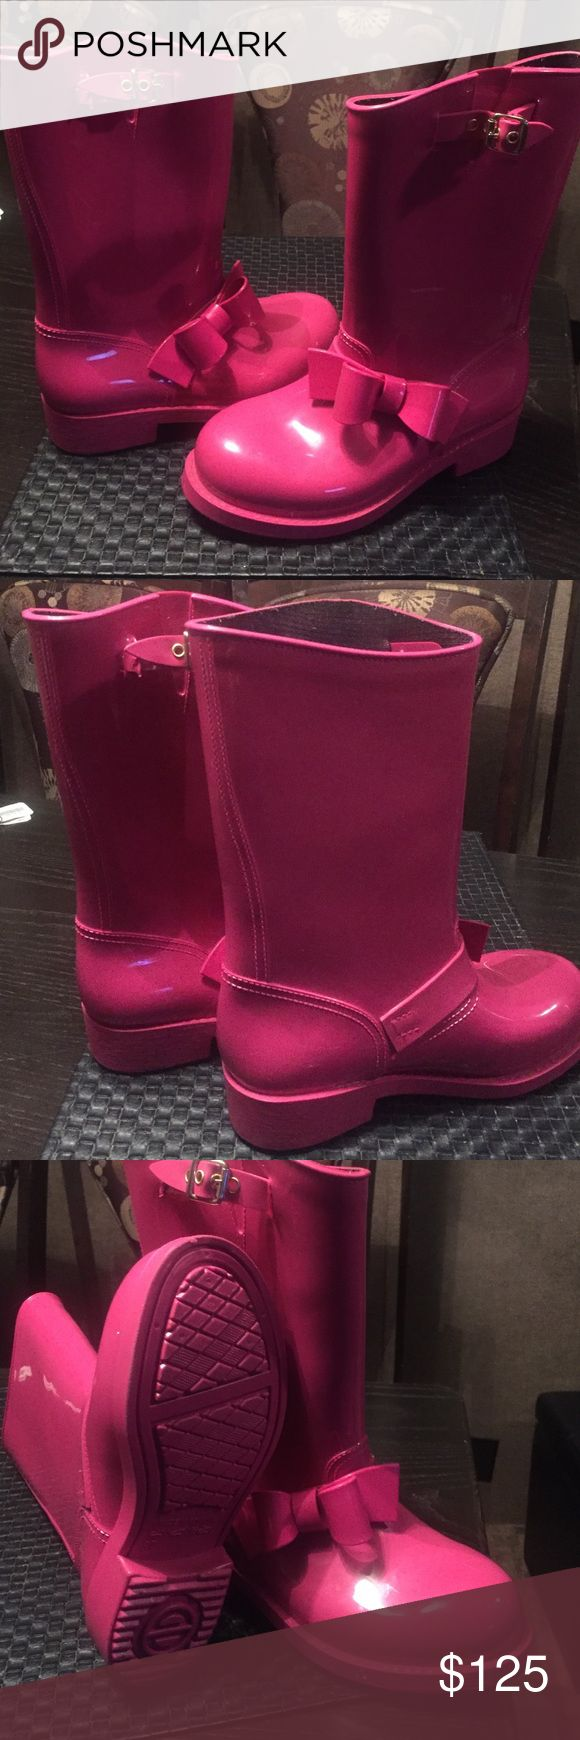 Pink rain boots by red Valentino Pink rain boots with bow Red by Valentino RED Valentino Shoes Winter & Rain Boots